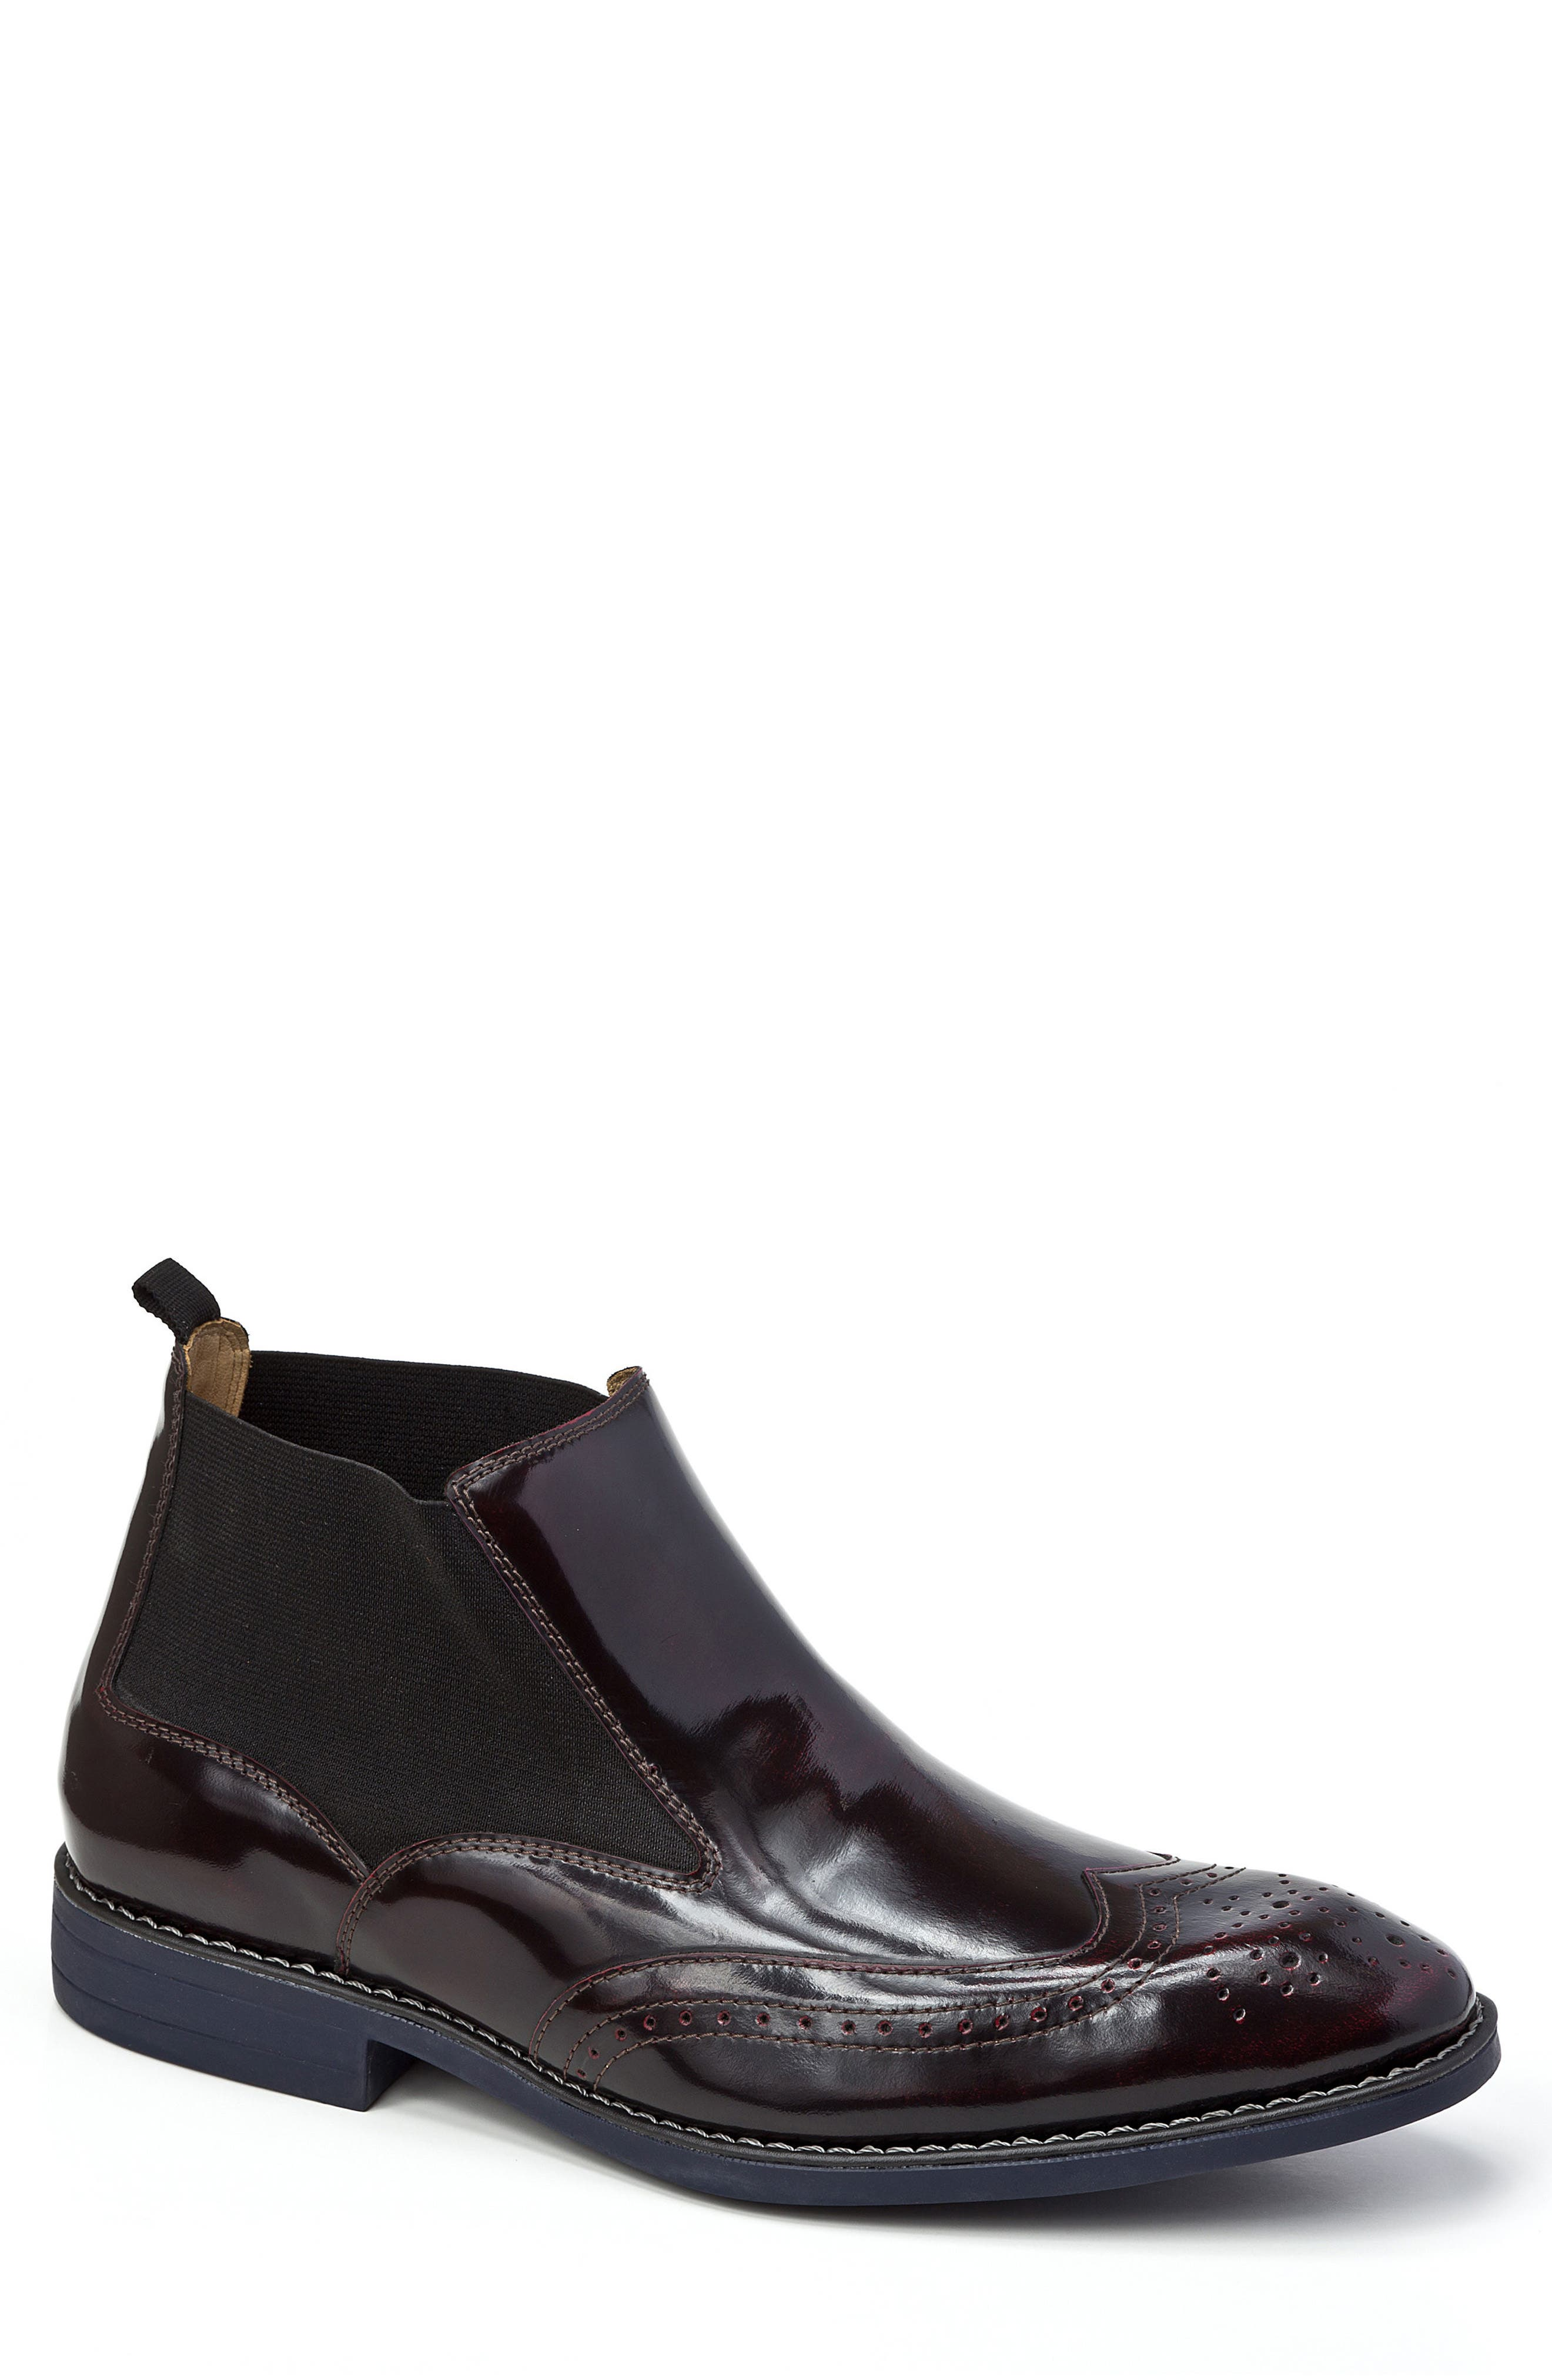 Alternate Image 1 Selected - Sandro Moscoloni Emanuel Chelsea Boot (Men)